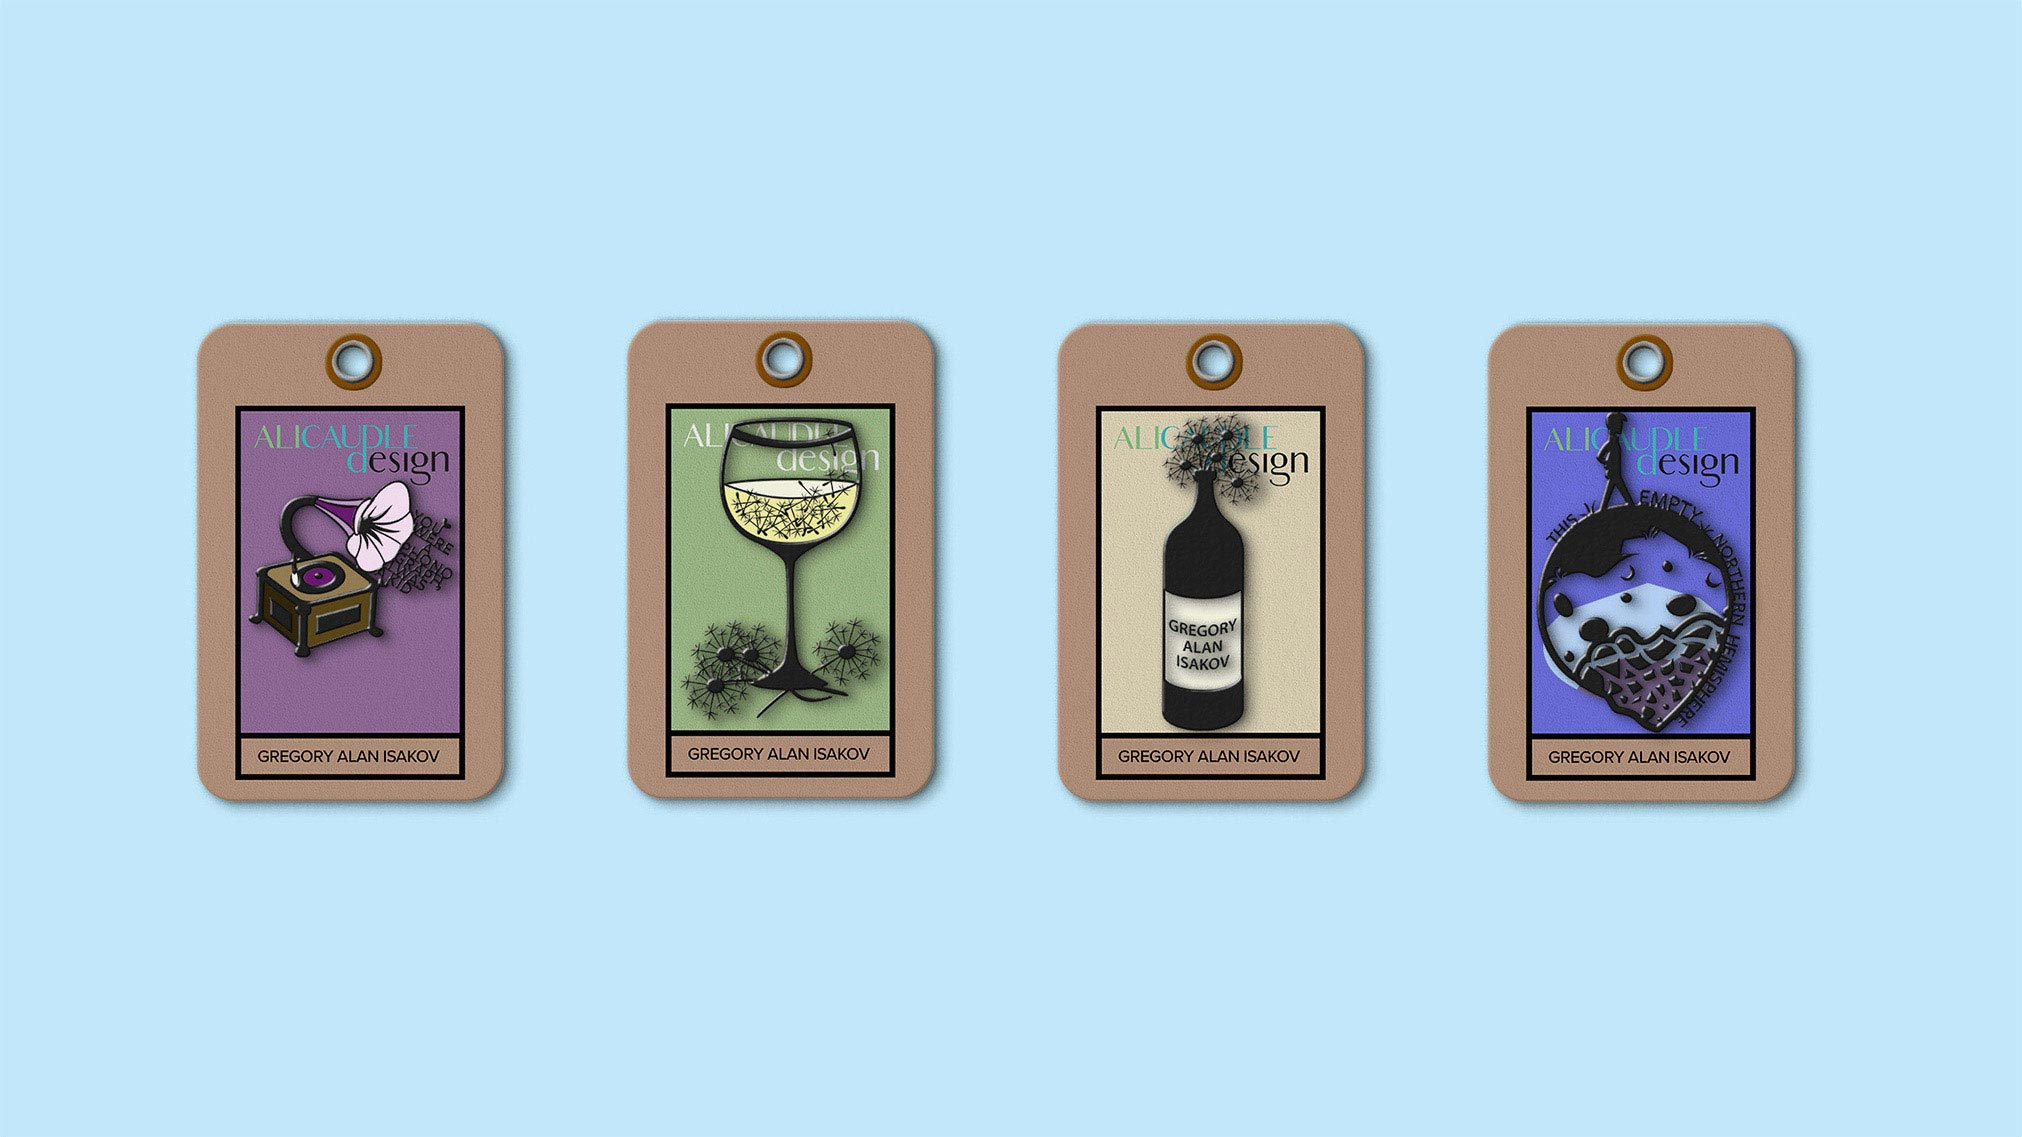 These pins are a part of an artist's album-release merchandise package. They were created first in Adobe Illustrator.